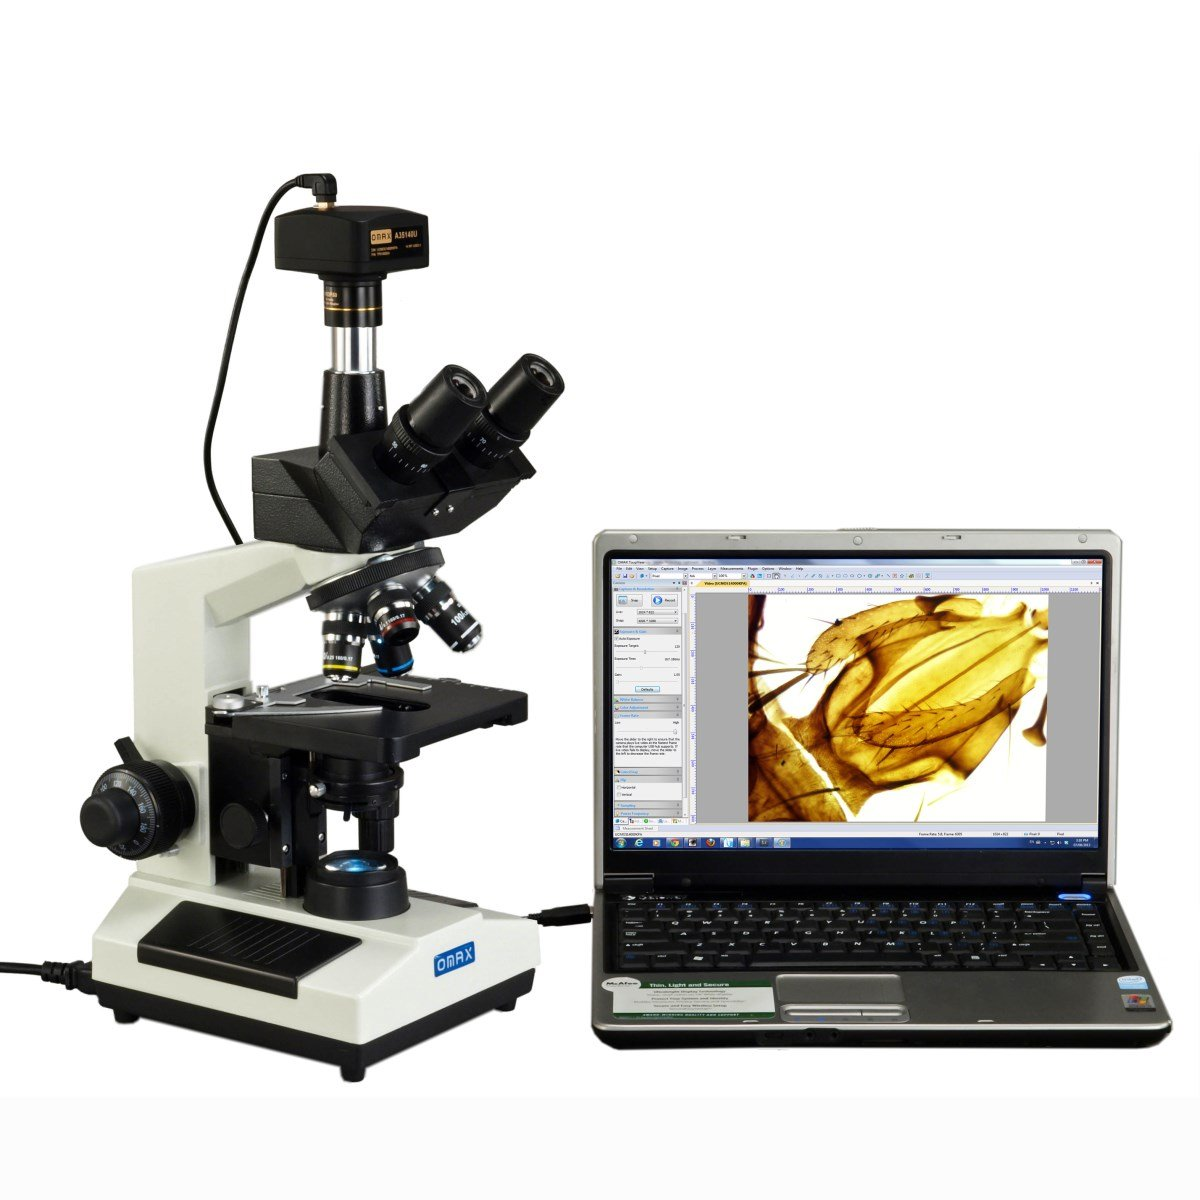 OMAX 40X-2500X Full Size Lab Digital Trinocular Compound LED Microscope with 14MP USB Camera and 3D Mechanical Stage